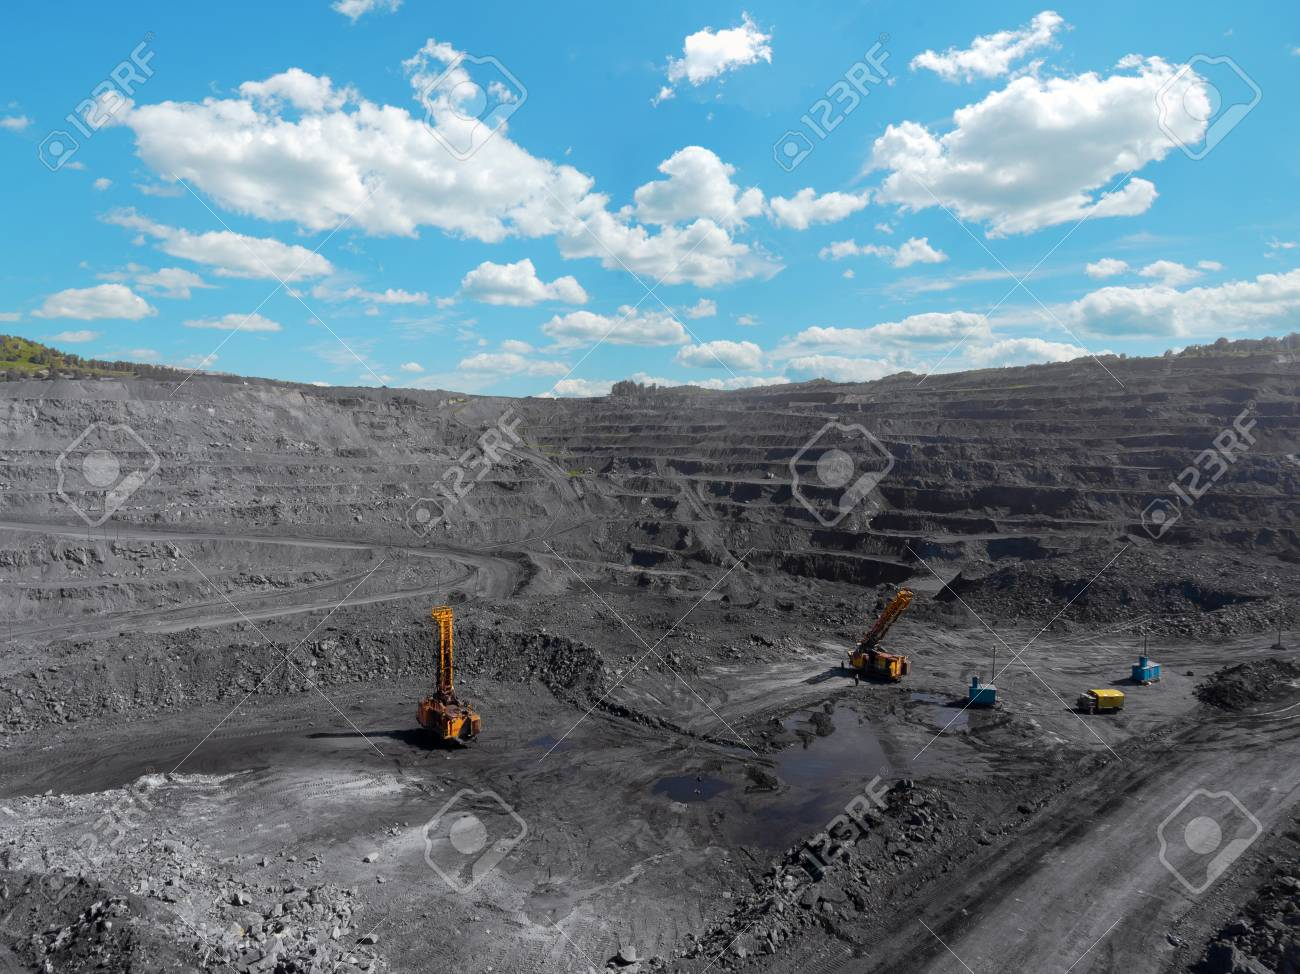 Open pit mine, breed sorting, mining coal, extractive industry anthracite, Coal industry - 88899691